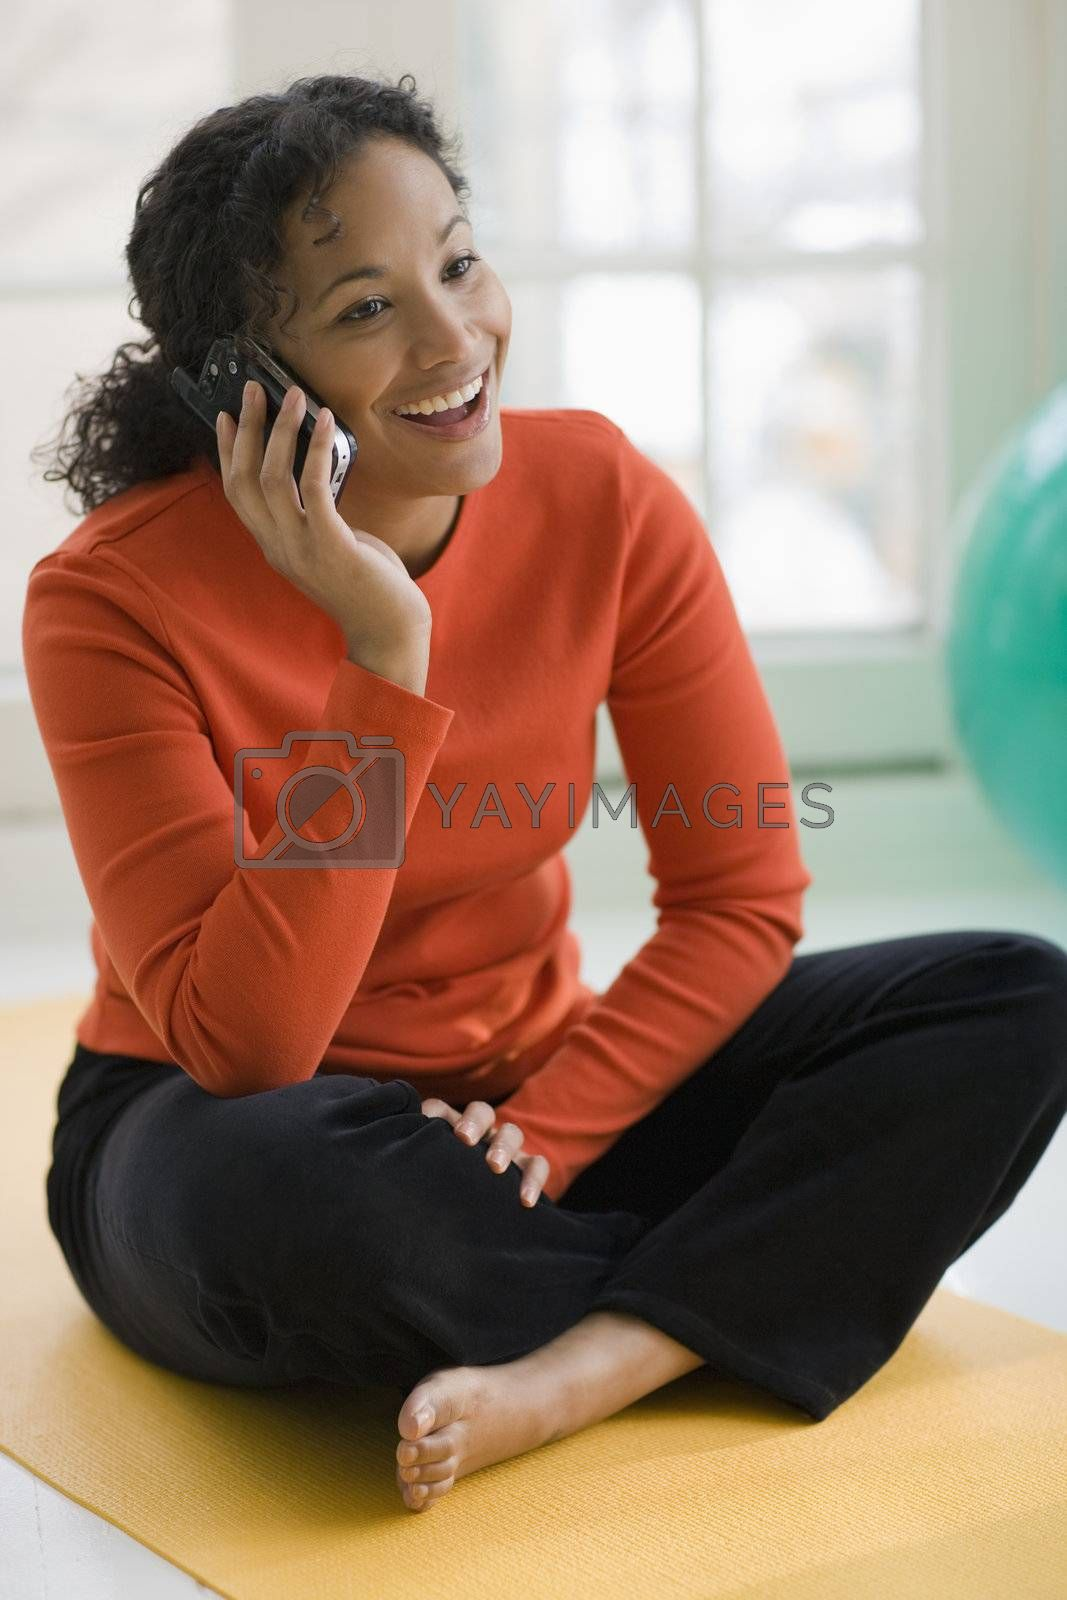 Smiling beautiful African American woman sitting on yoga mat talking on cell phone